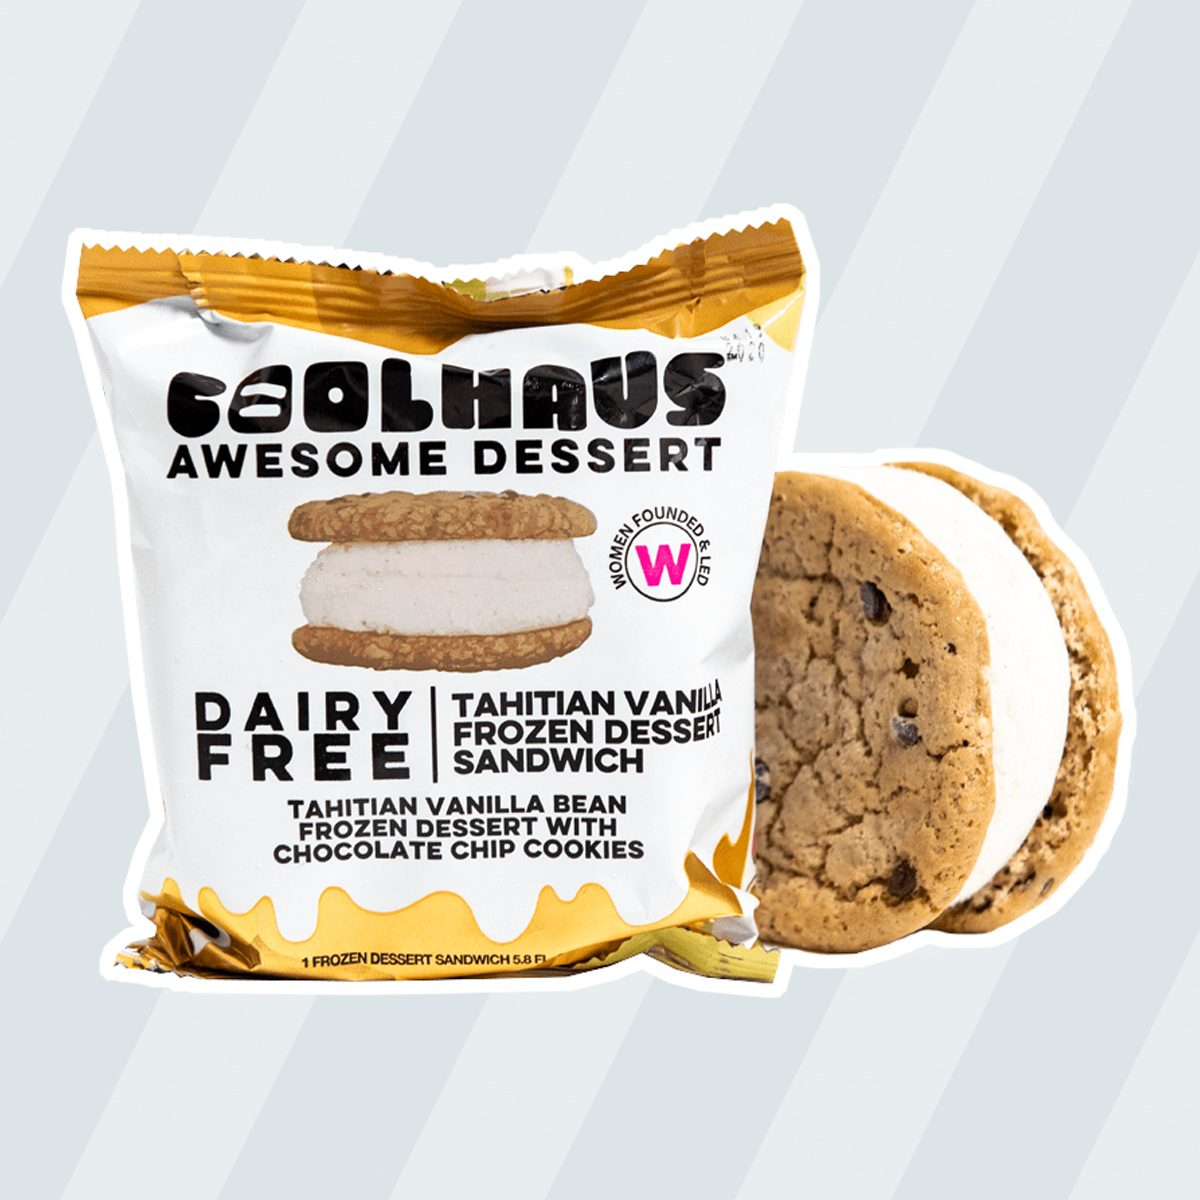 Coolhaus Awesome Ice Cream